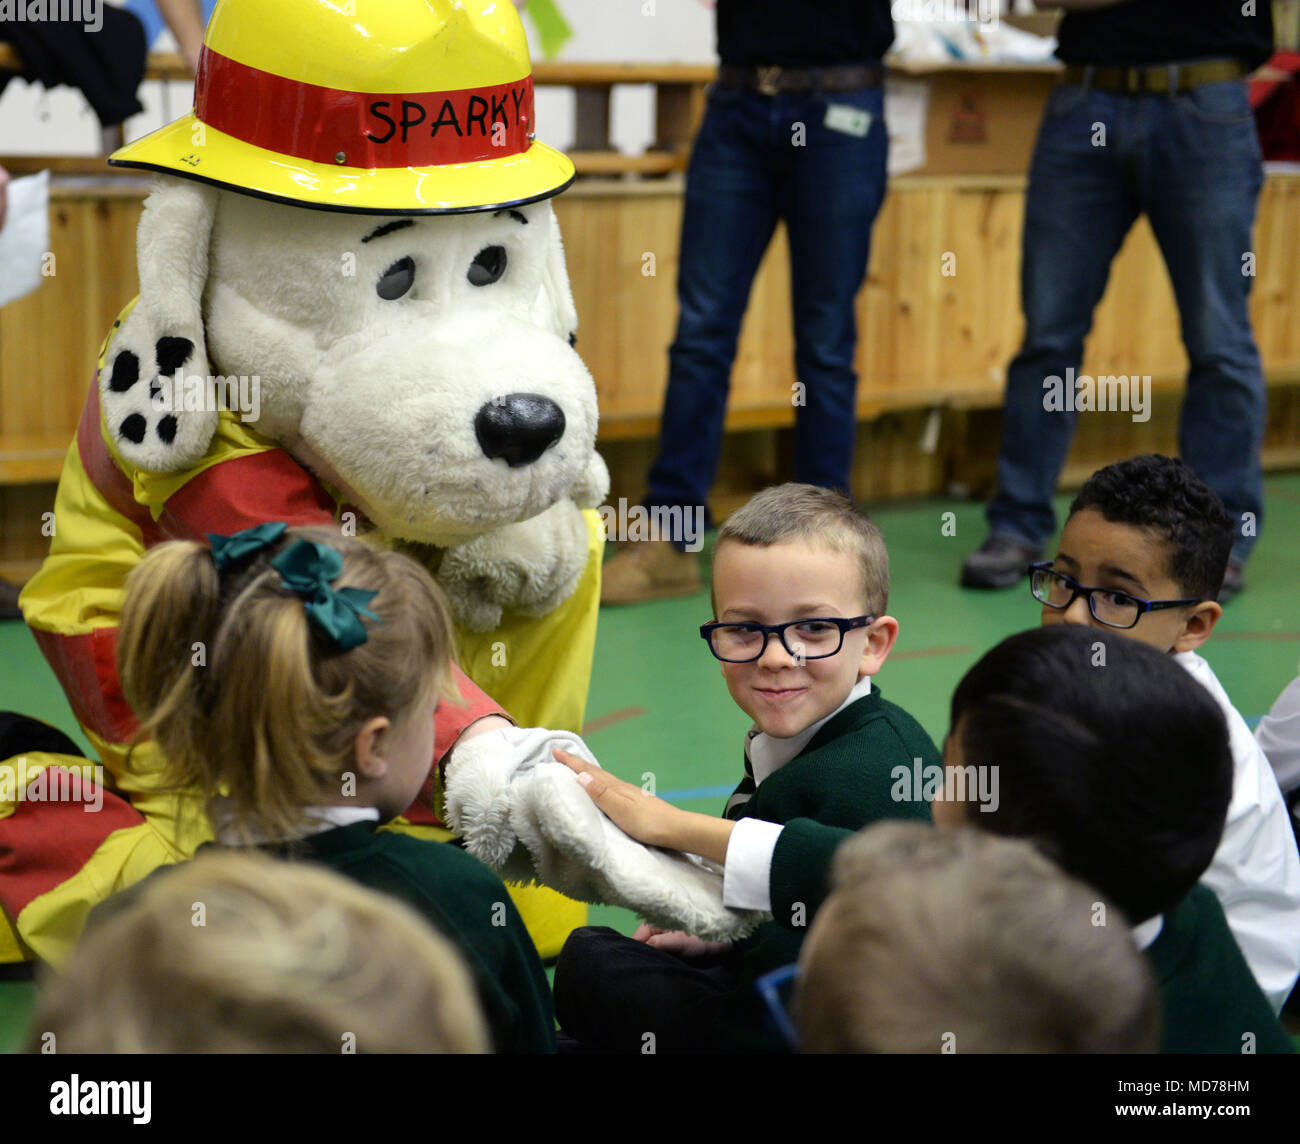 Sparky The Fire Dog 100th Civil Engineer Squadron Department Mascot Greets Young Students